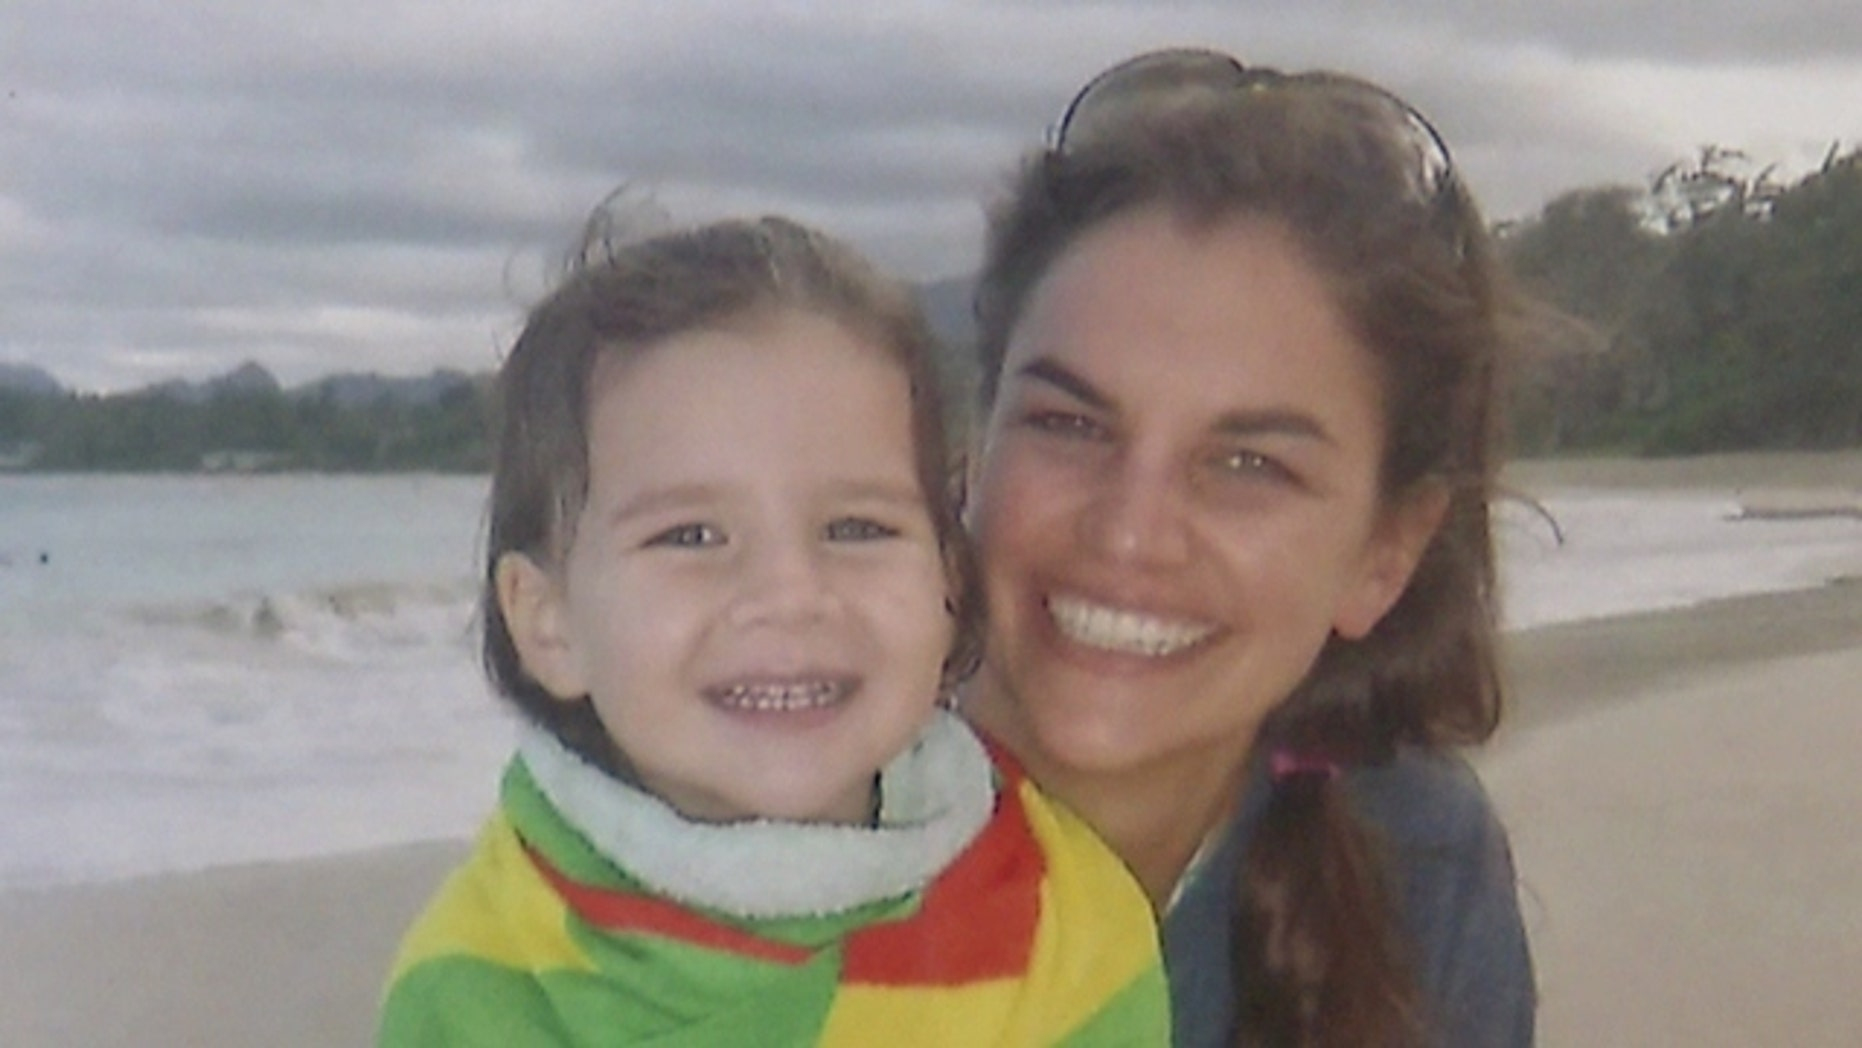 This undated photo shows Finley Boyle (left) with her mother Ashely. (Courtesy KHON.com via family)